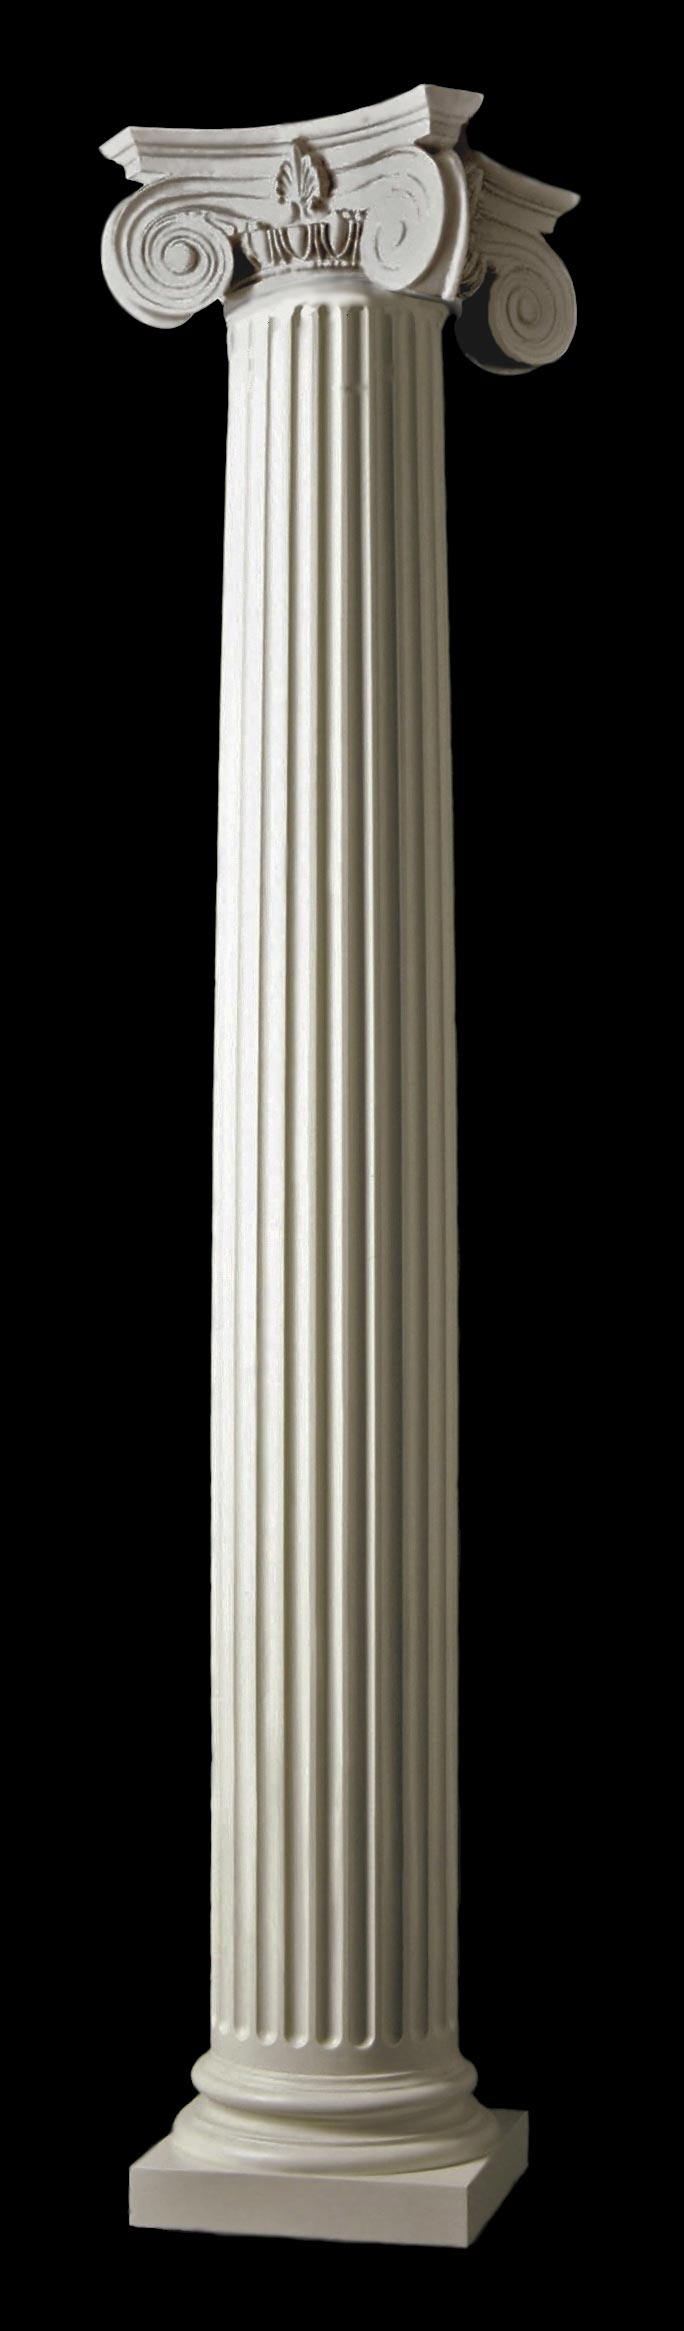 The parthenon the epitome of the doric order - Empire Wood Columns Attic Base Chadsworth S 1 800 Columns